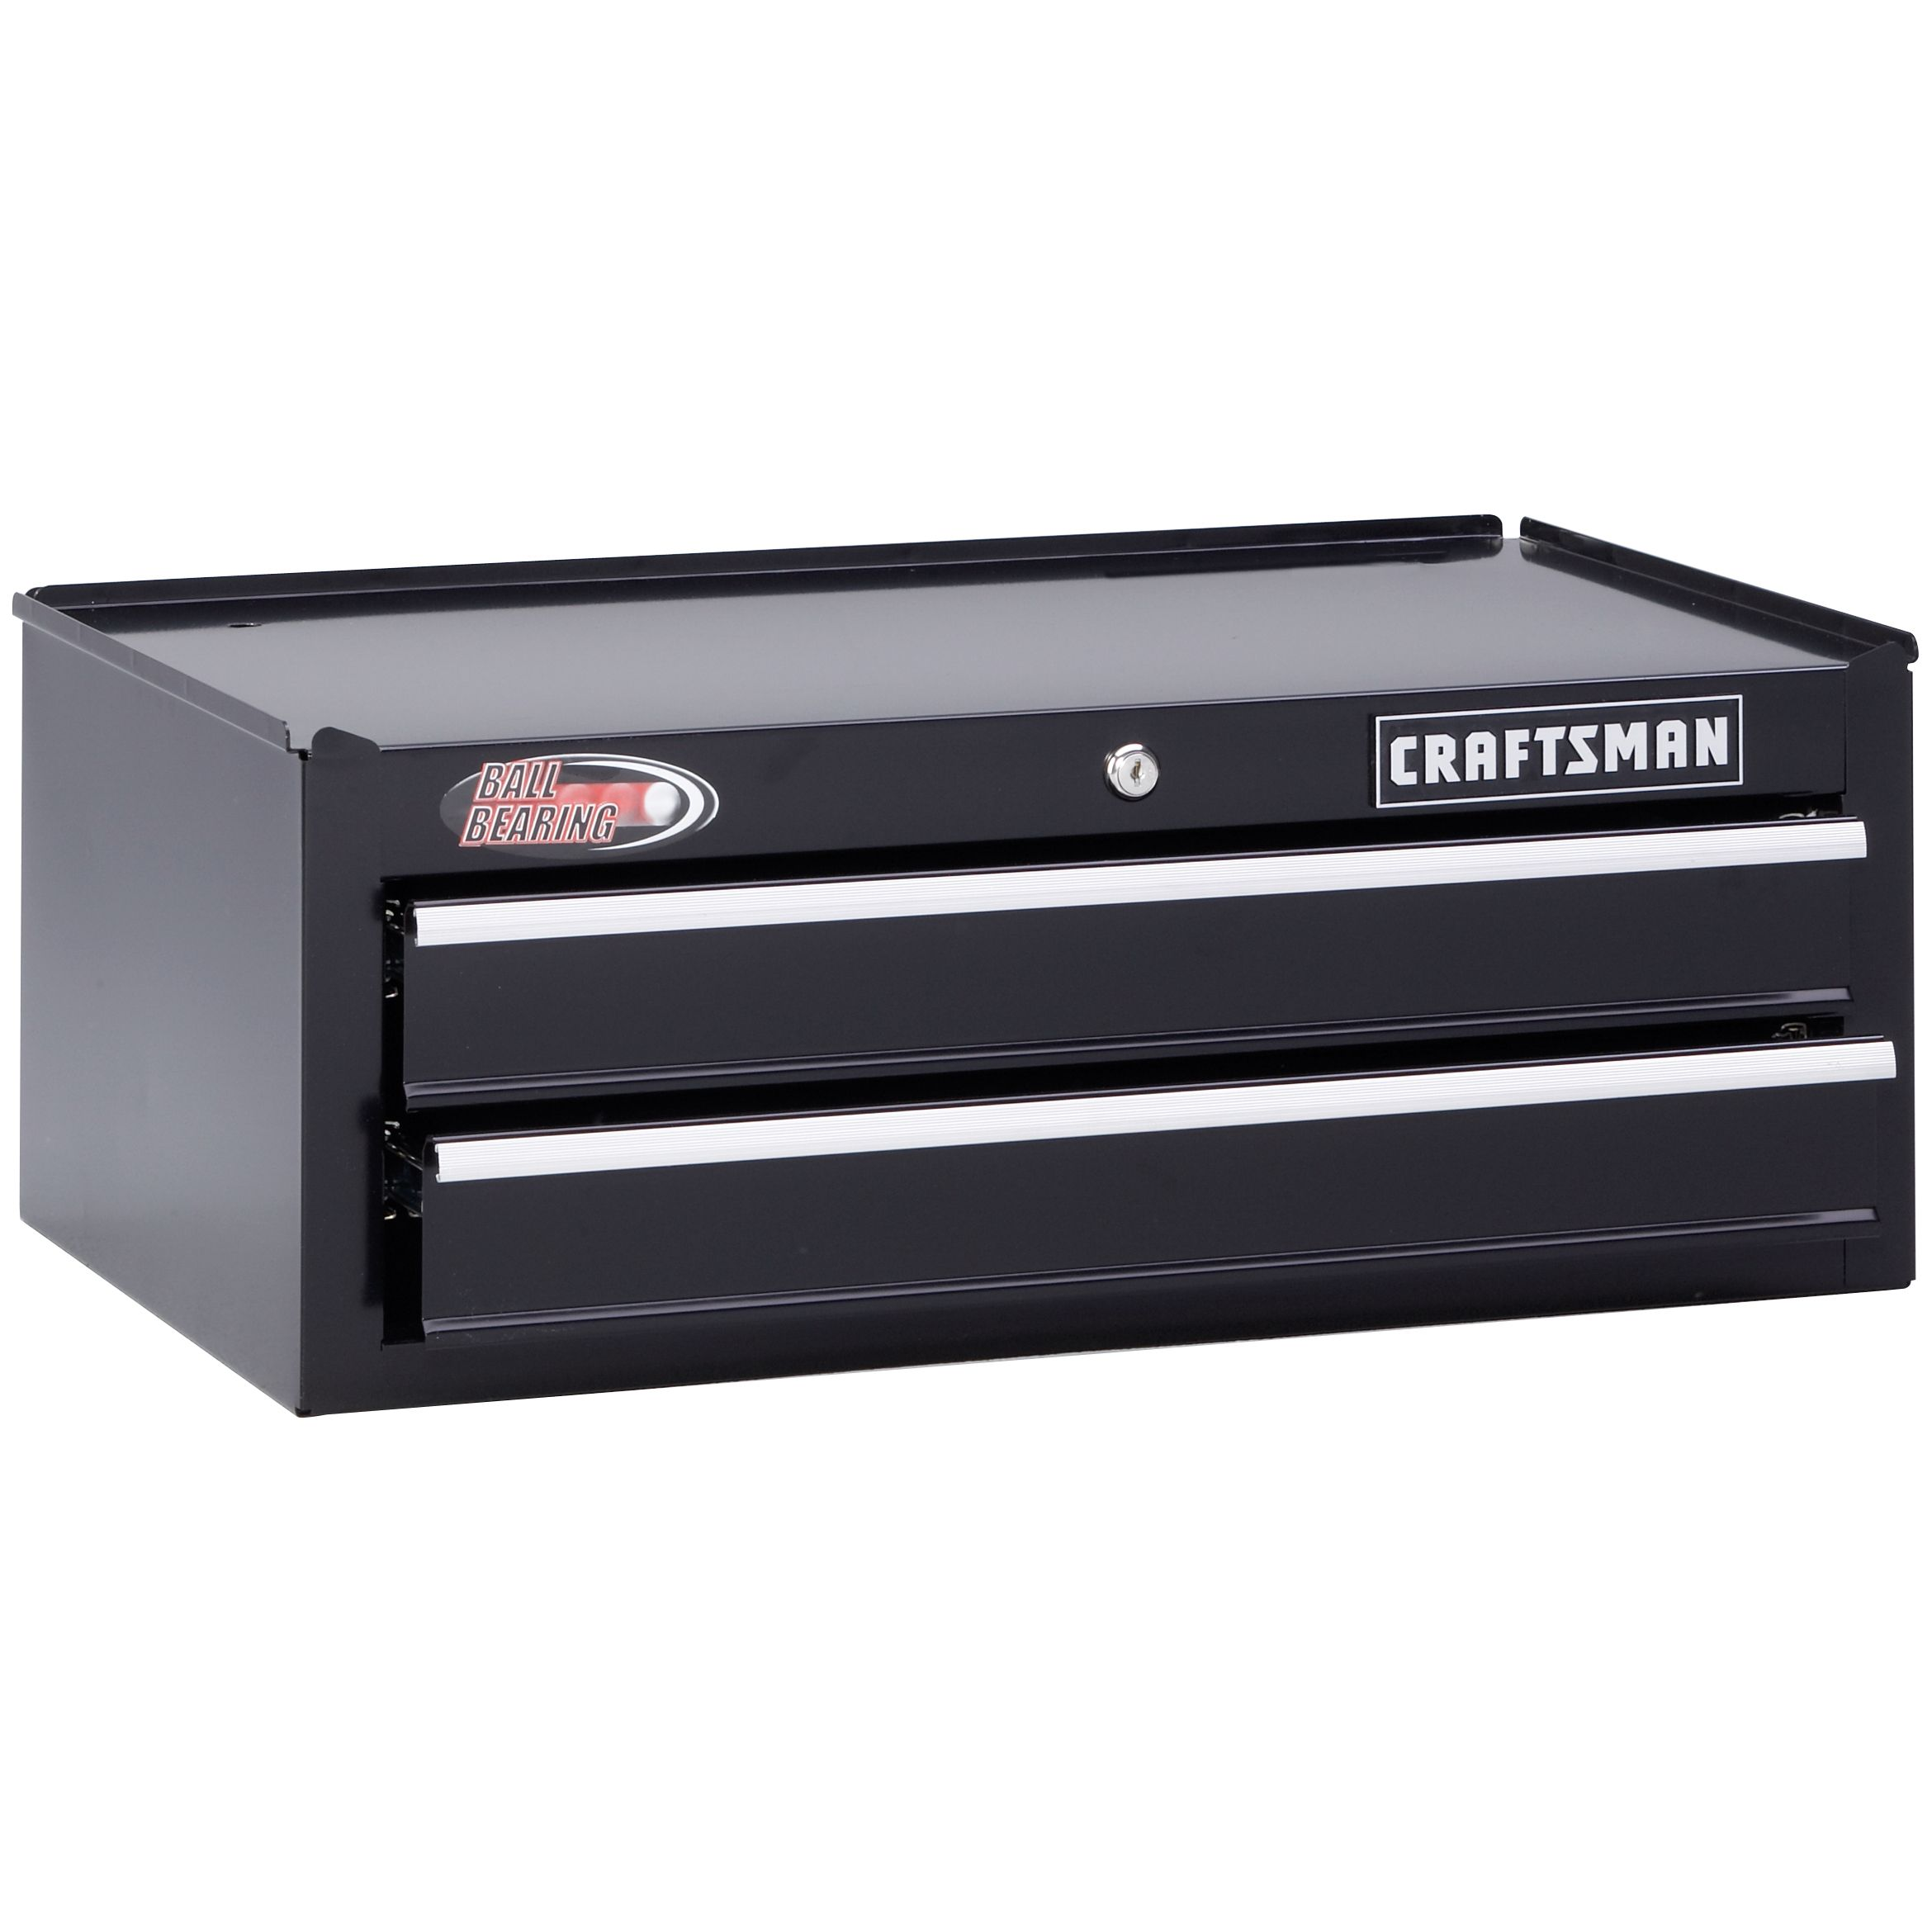 "Craftsman 26-1/2"""" 2-Drawer Ball-Bearing Intermediate Tool Chest - Black"